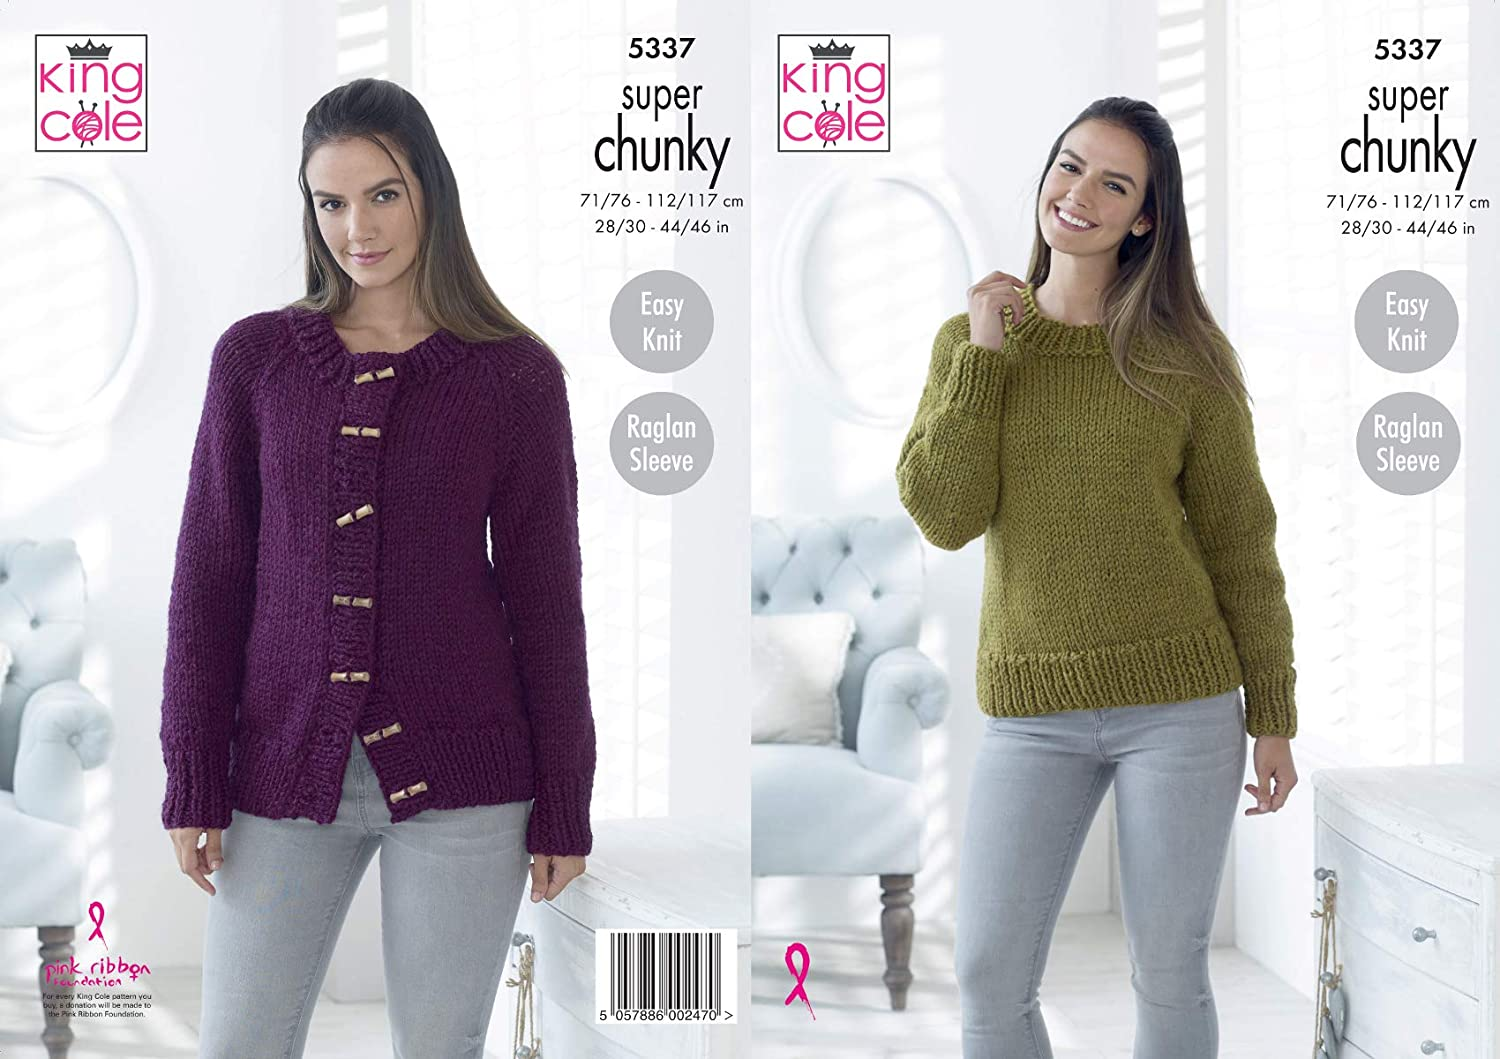 9b03c4d82a38 King Cole Ladies Super Chunky Knitting Pattern Easy Knit Raglan Sleeve  Sweater   Cardigan (5337)  Amazon.co.uk  Kitchen   Home